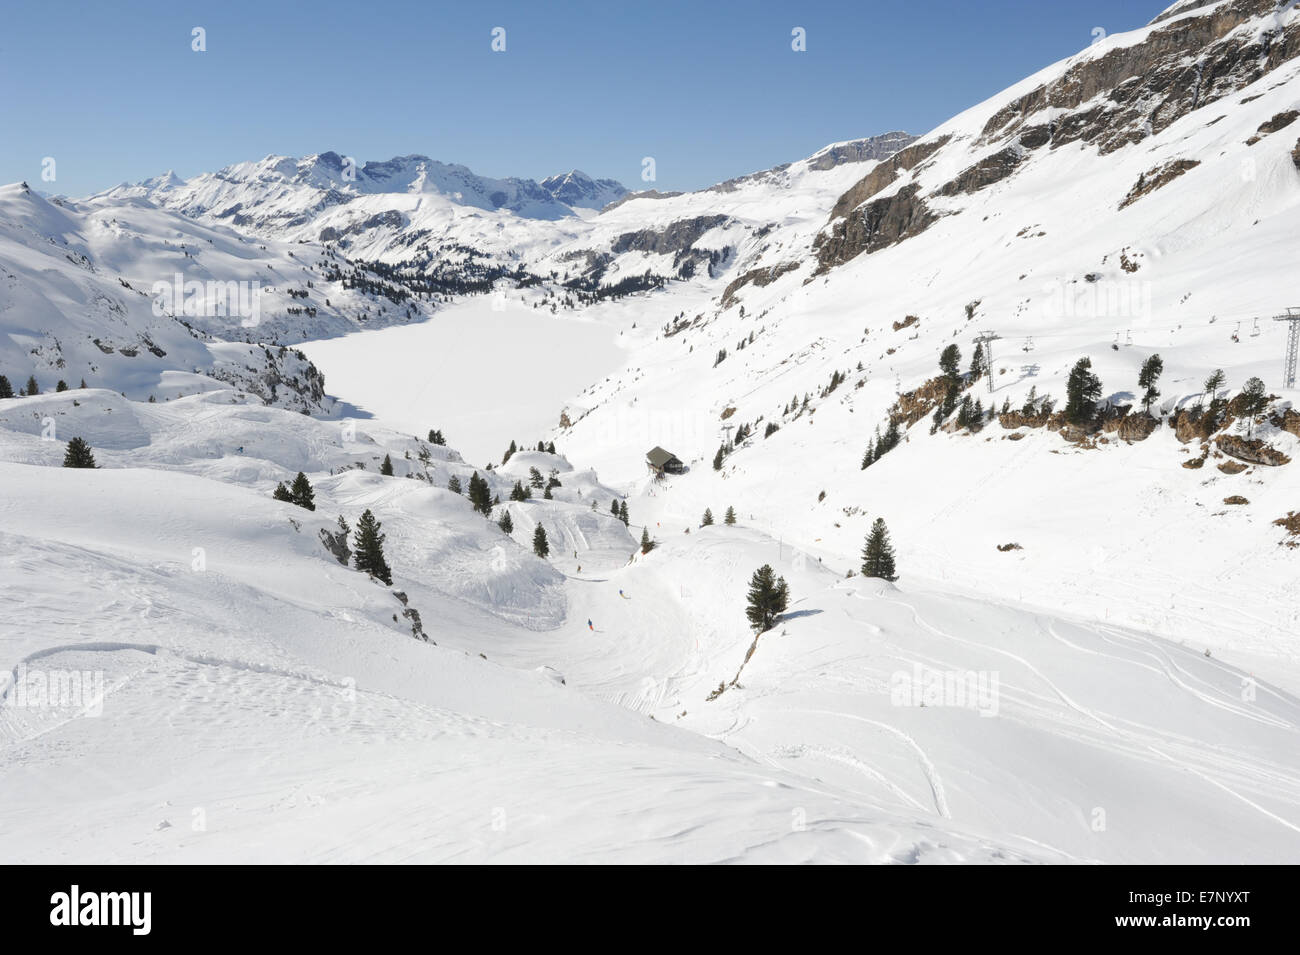 buy ski lift chair jewelry stand switzerland, alpine, alps, lift, clear, cold, country, day stock photo: 73626976 - alamy